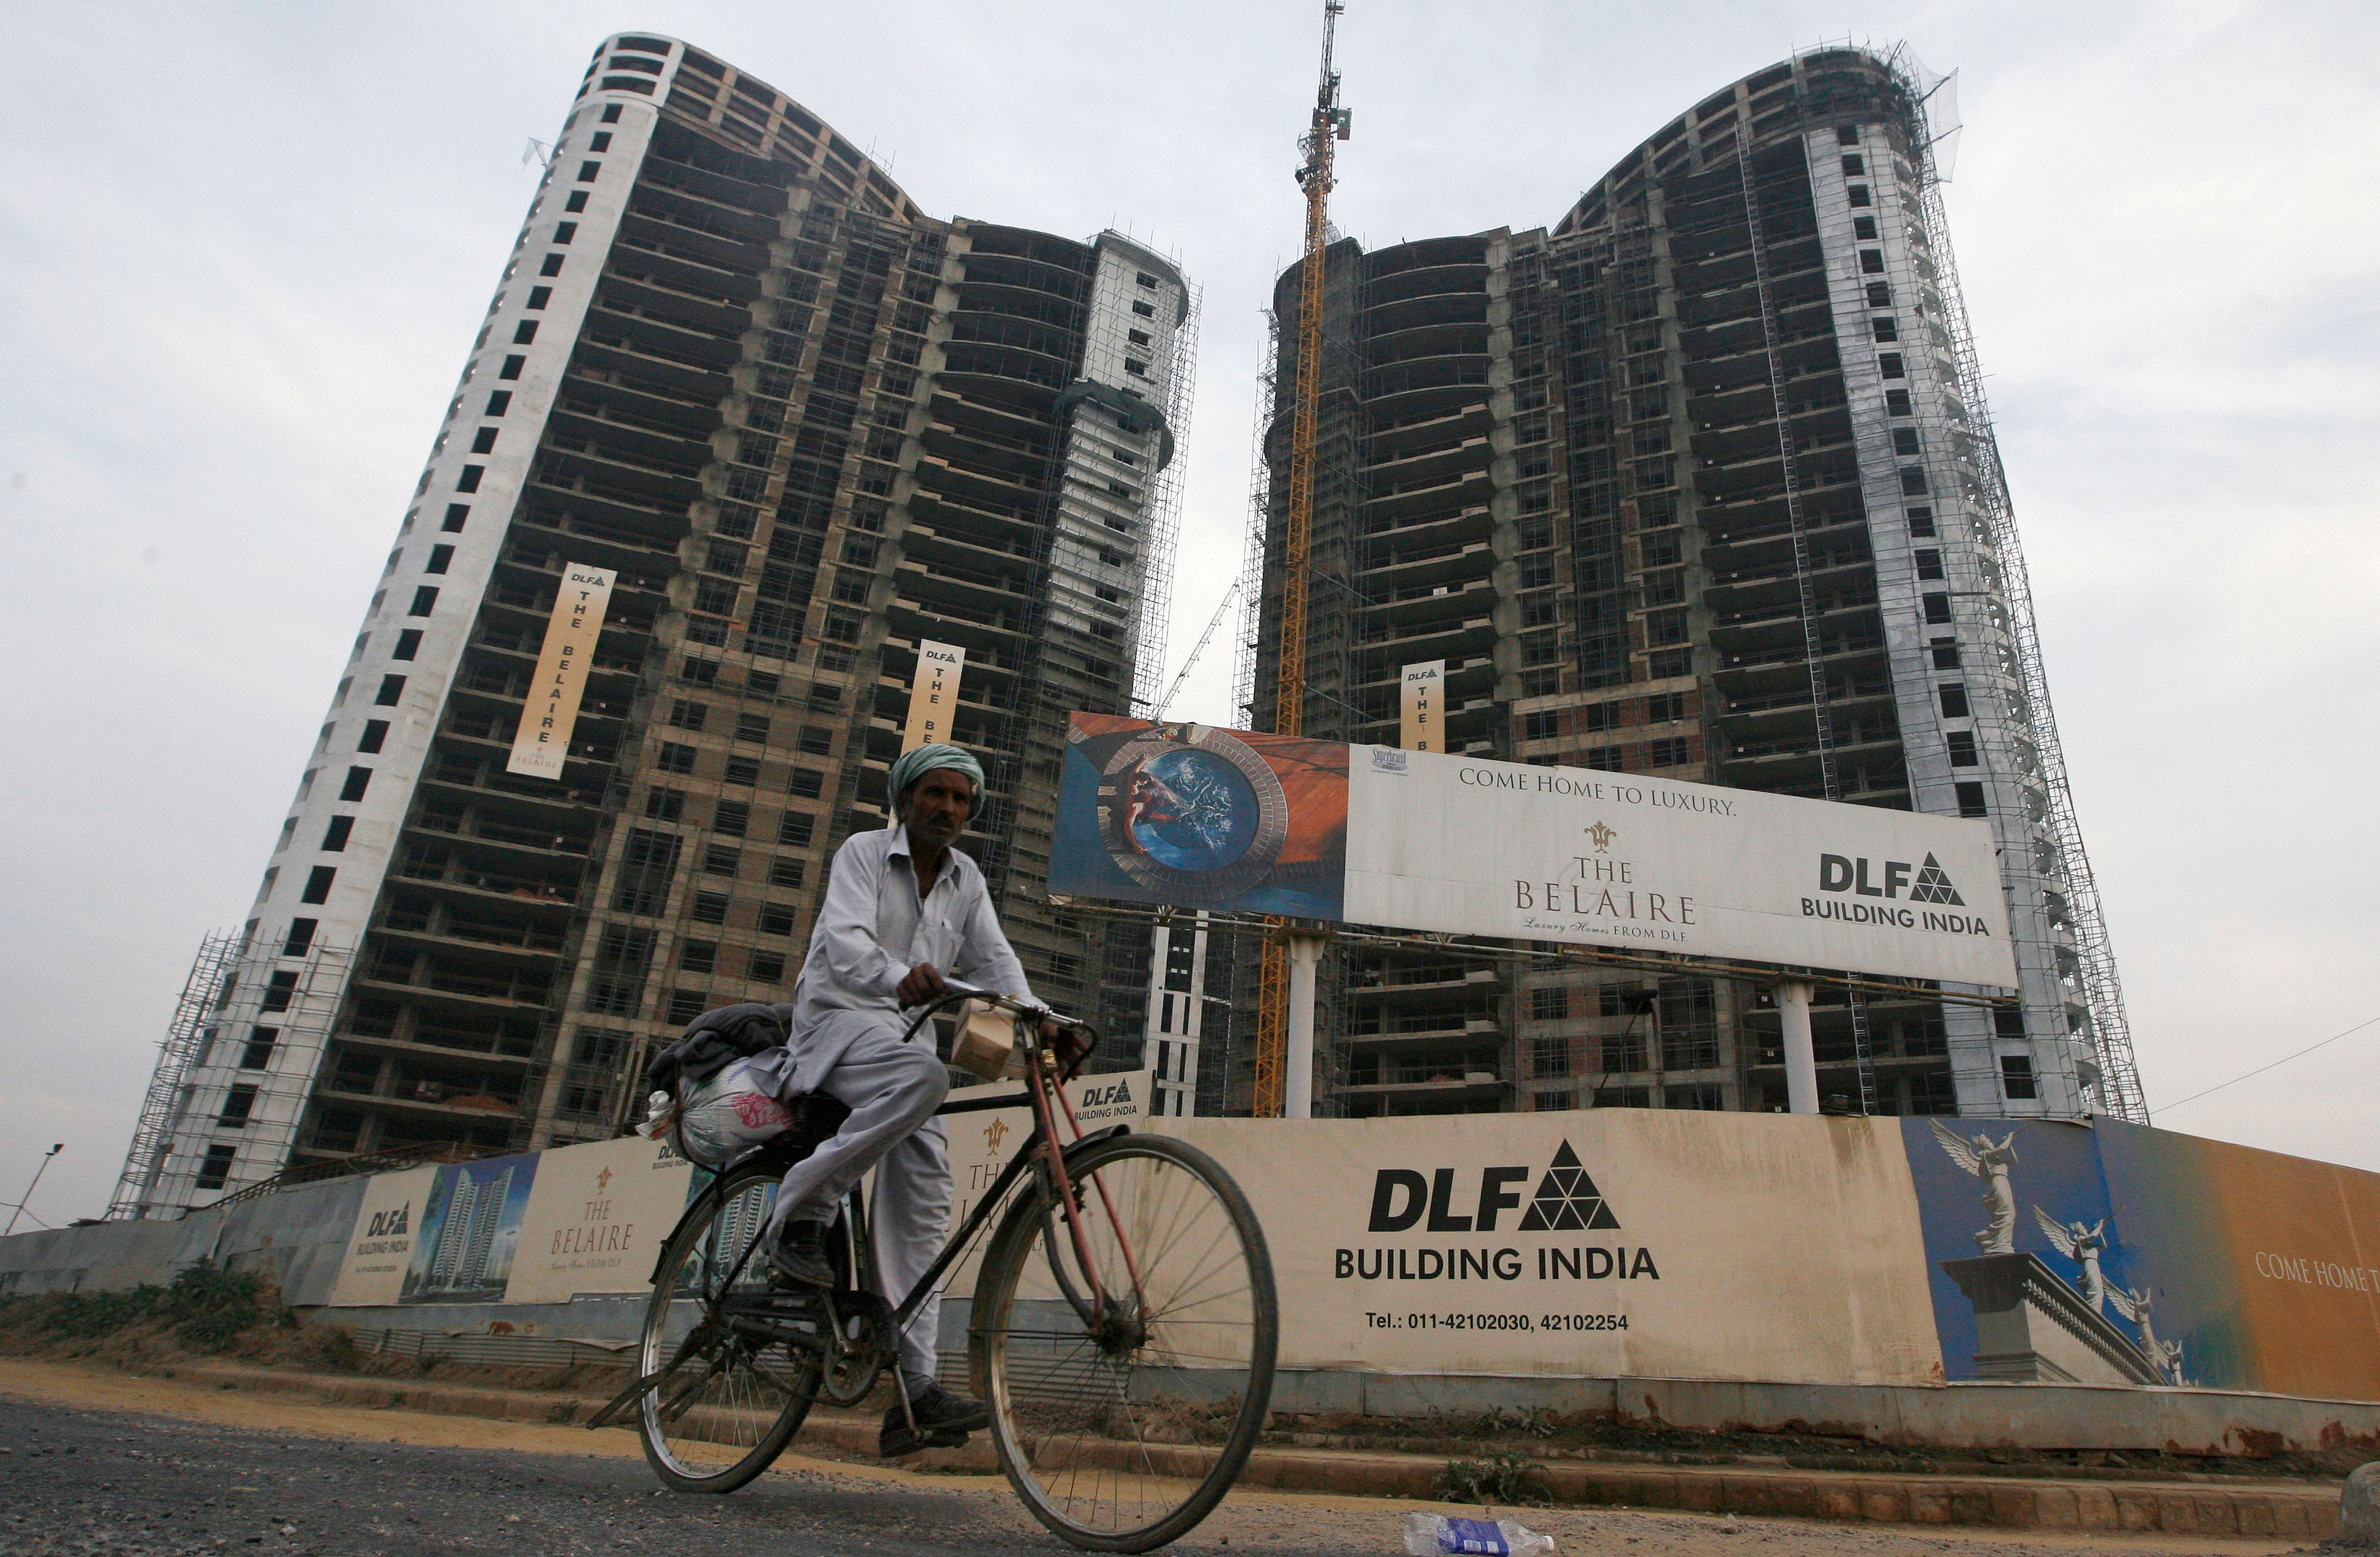 DLF raises $57M through NCDs